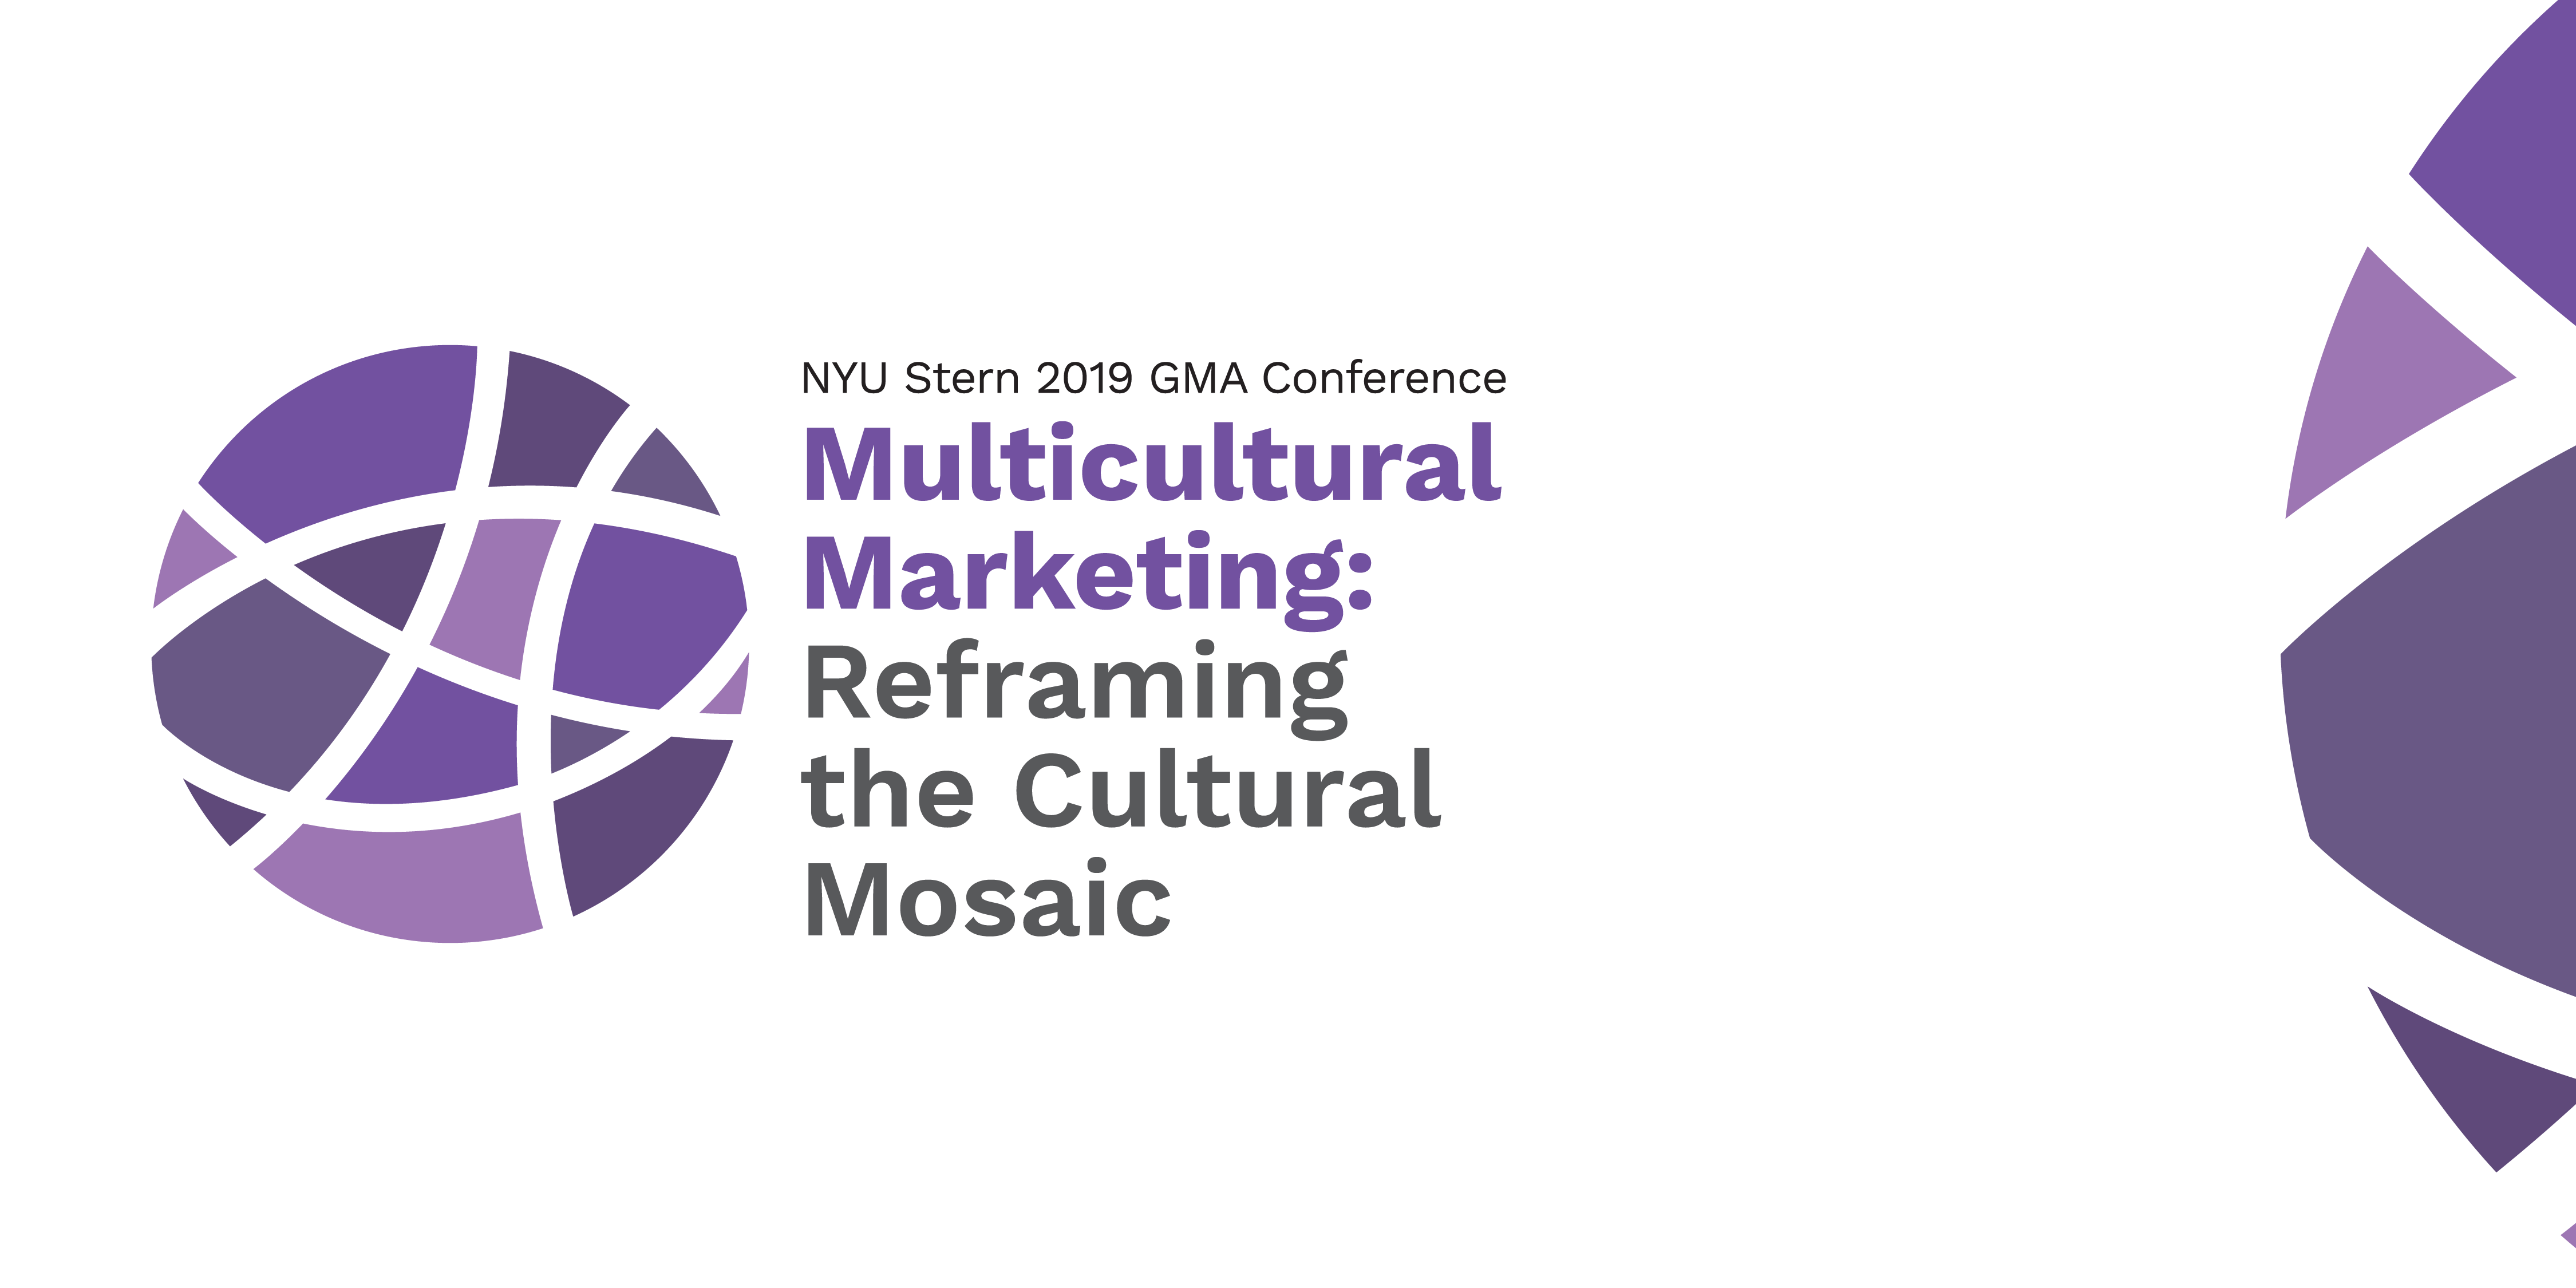 2019 GMA Conference -  Multicultural Marketing: Reframing the Cultural Mosaic